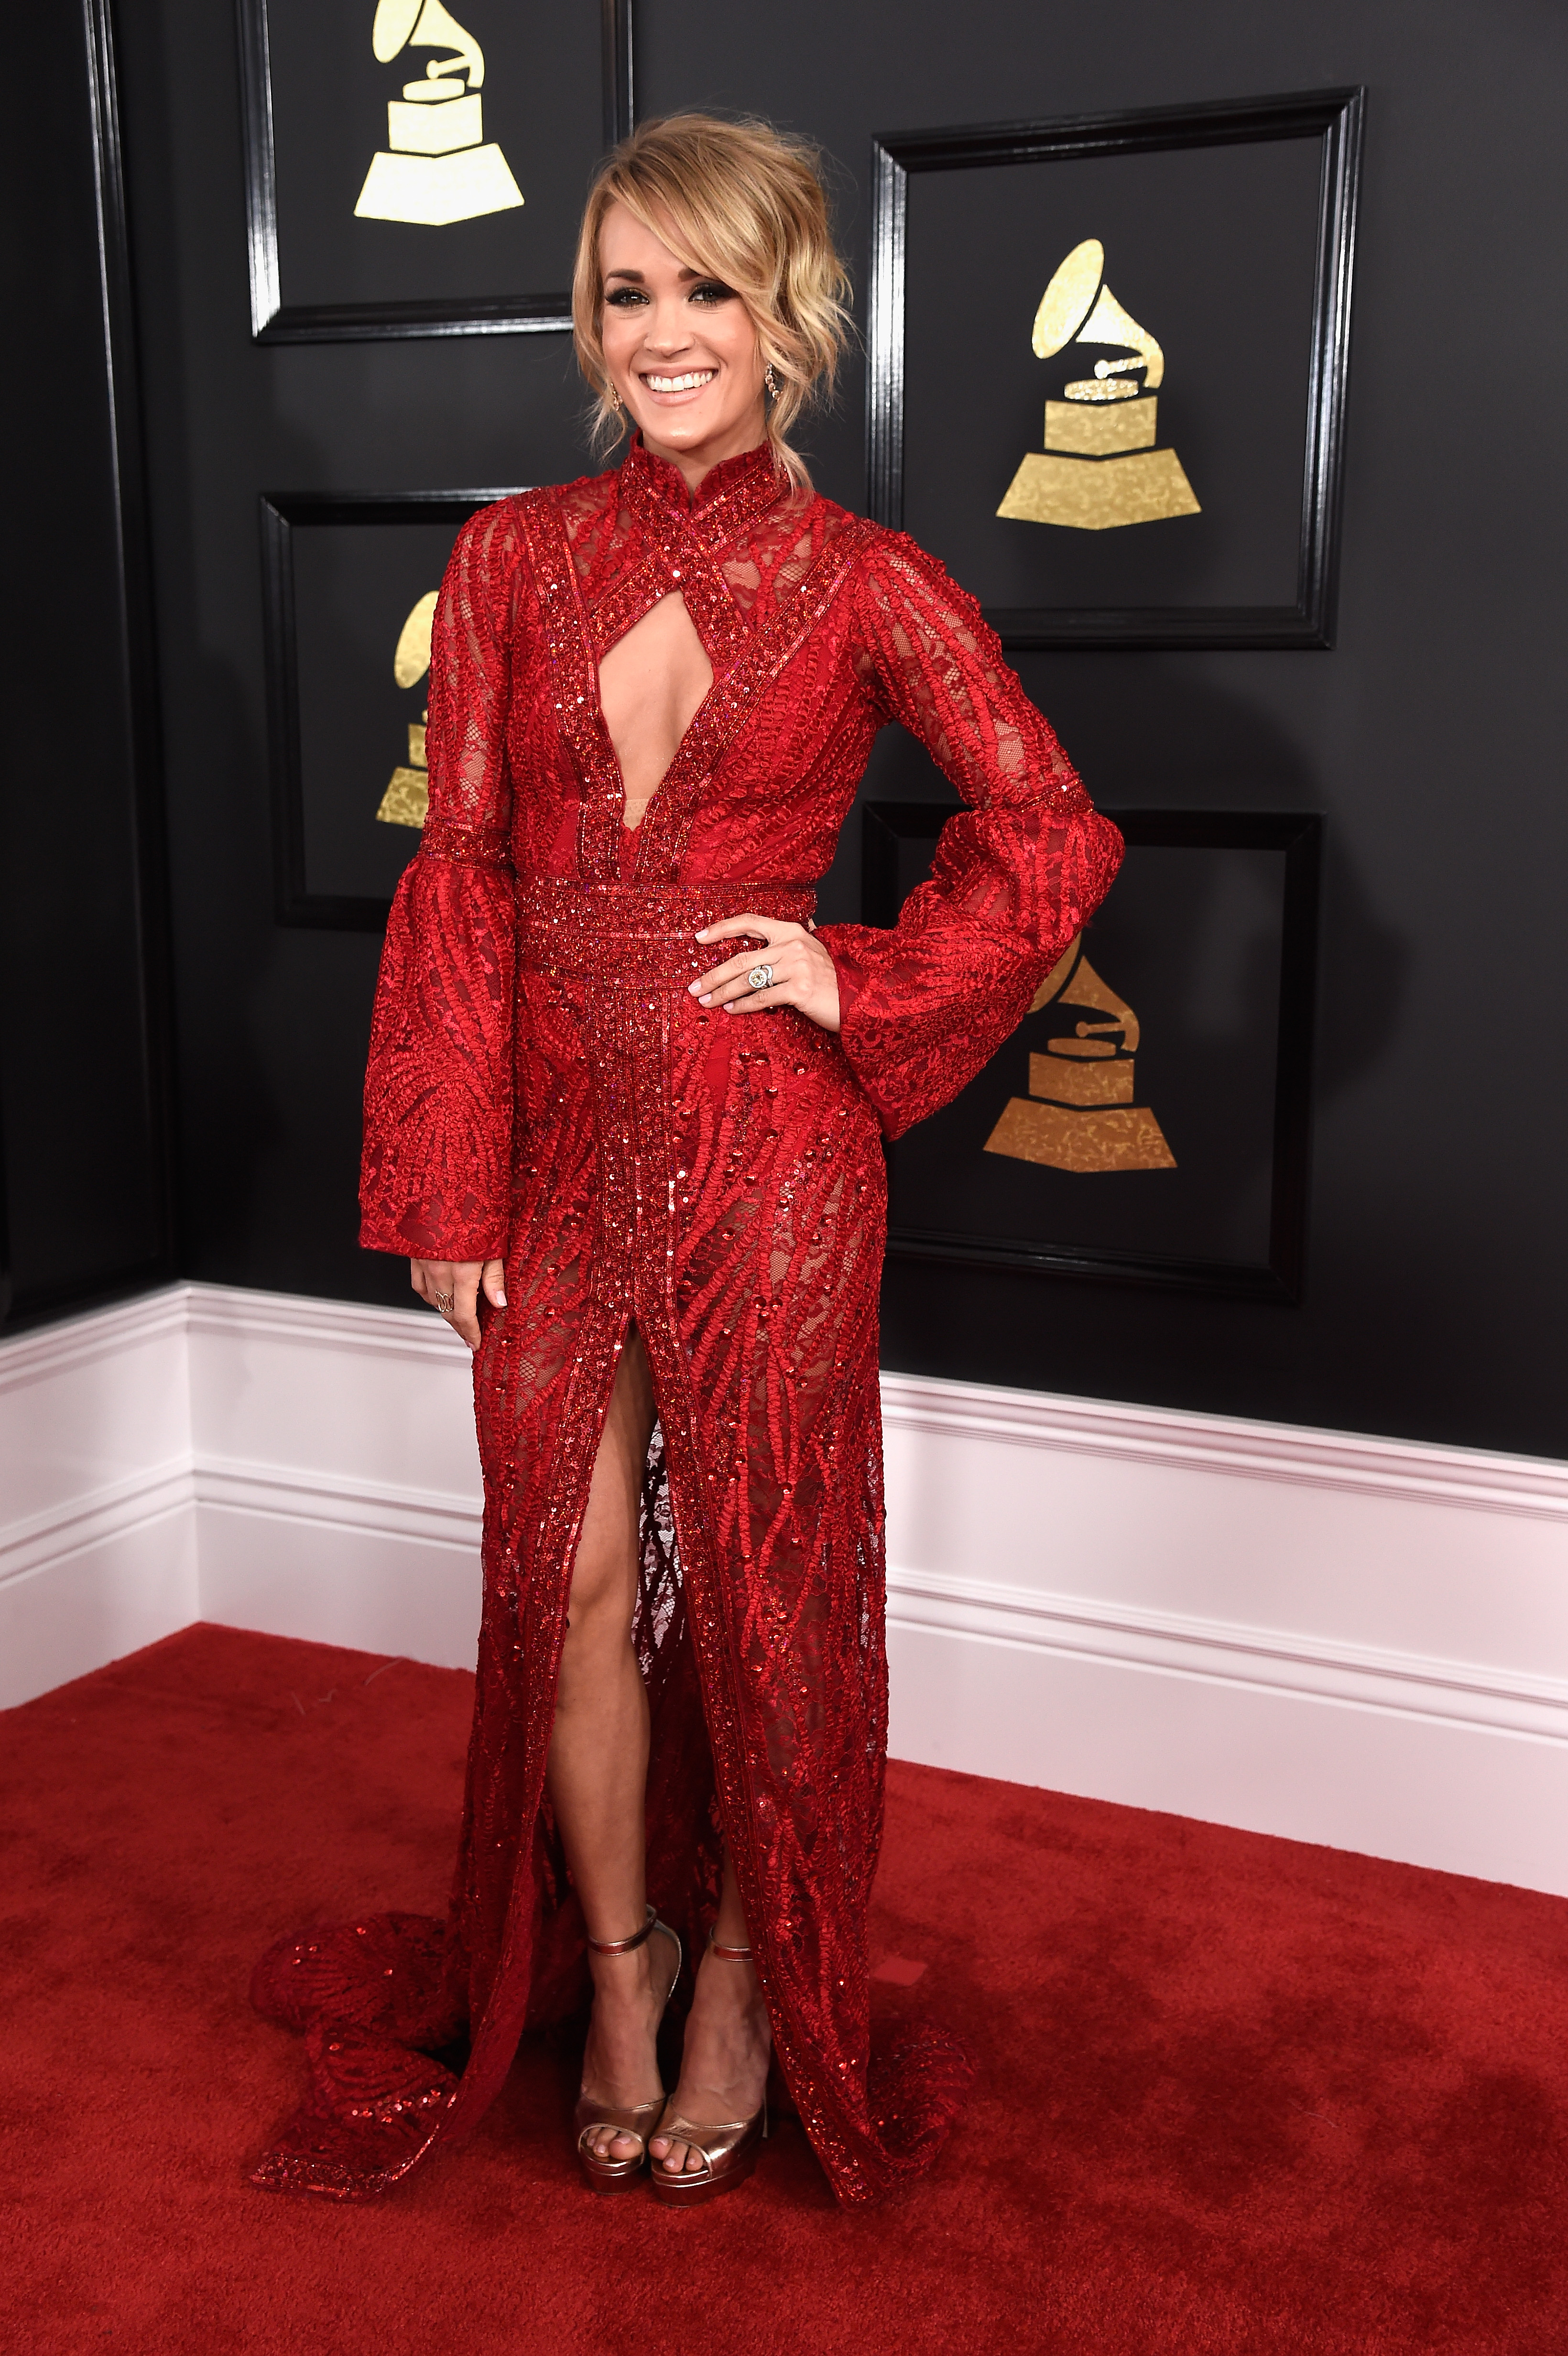 Carrie Underwood attends The 59th GRAMMY Awards; Photo by Kevin Mazur/WireImage